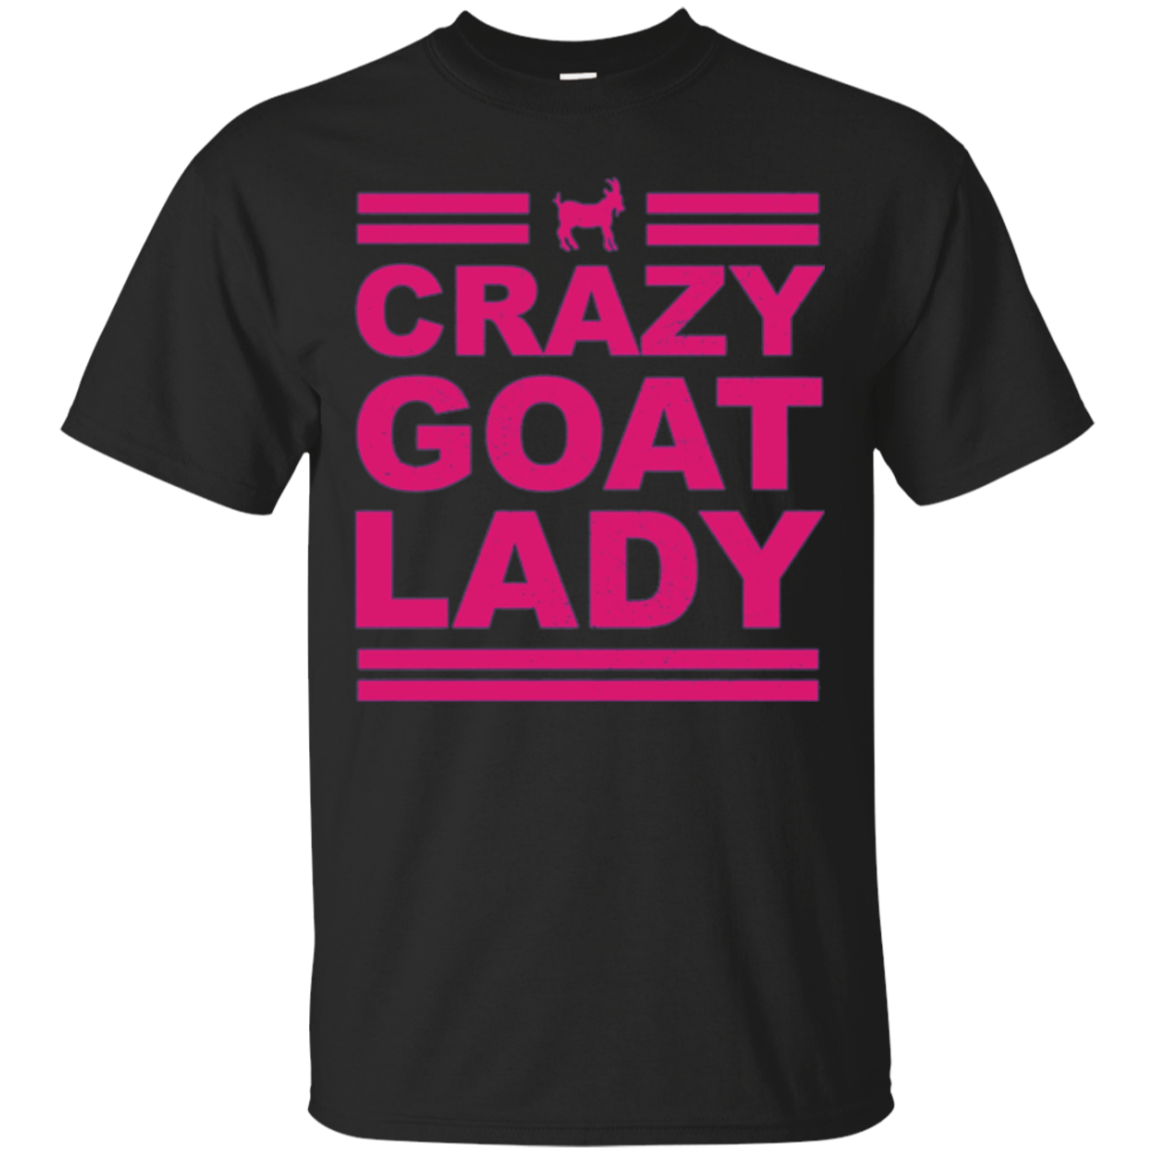 Crazy Goat Lady T-Shirt Funny Goat Long Sleeve T-Shirt Pink